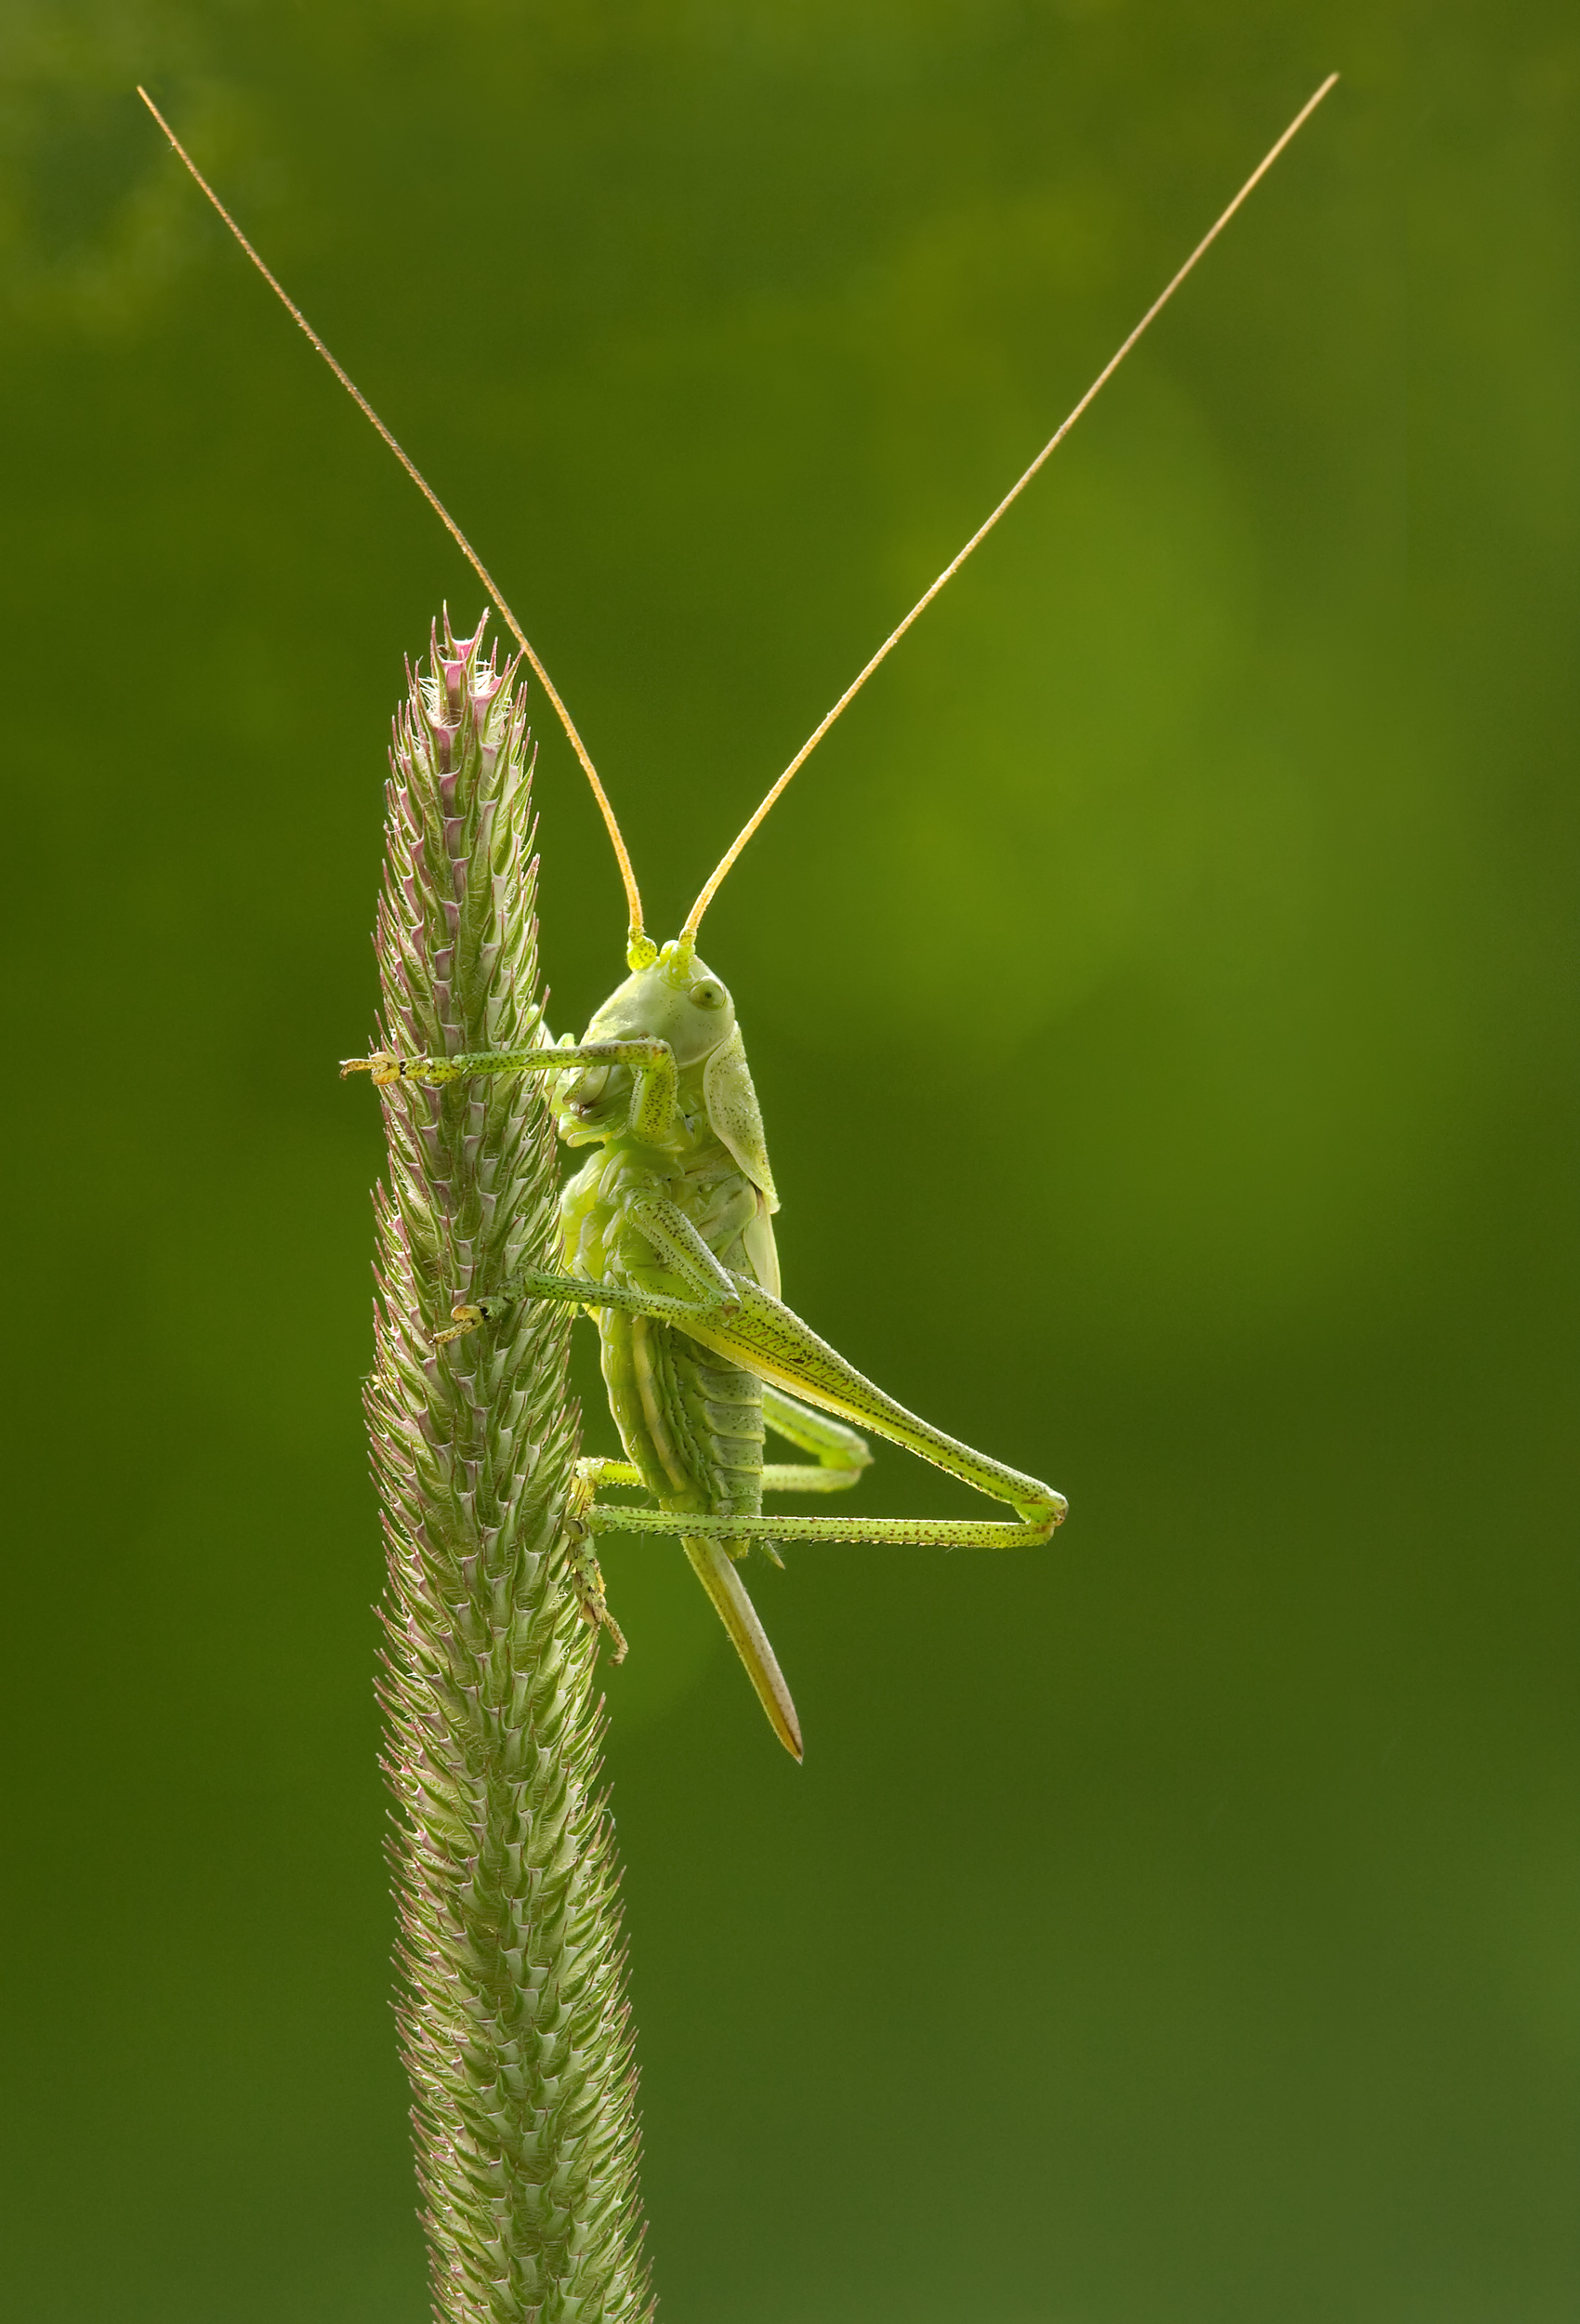 Tettigonia_virdissima_nymph_on_Phleum_pr